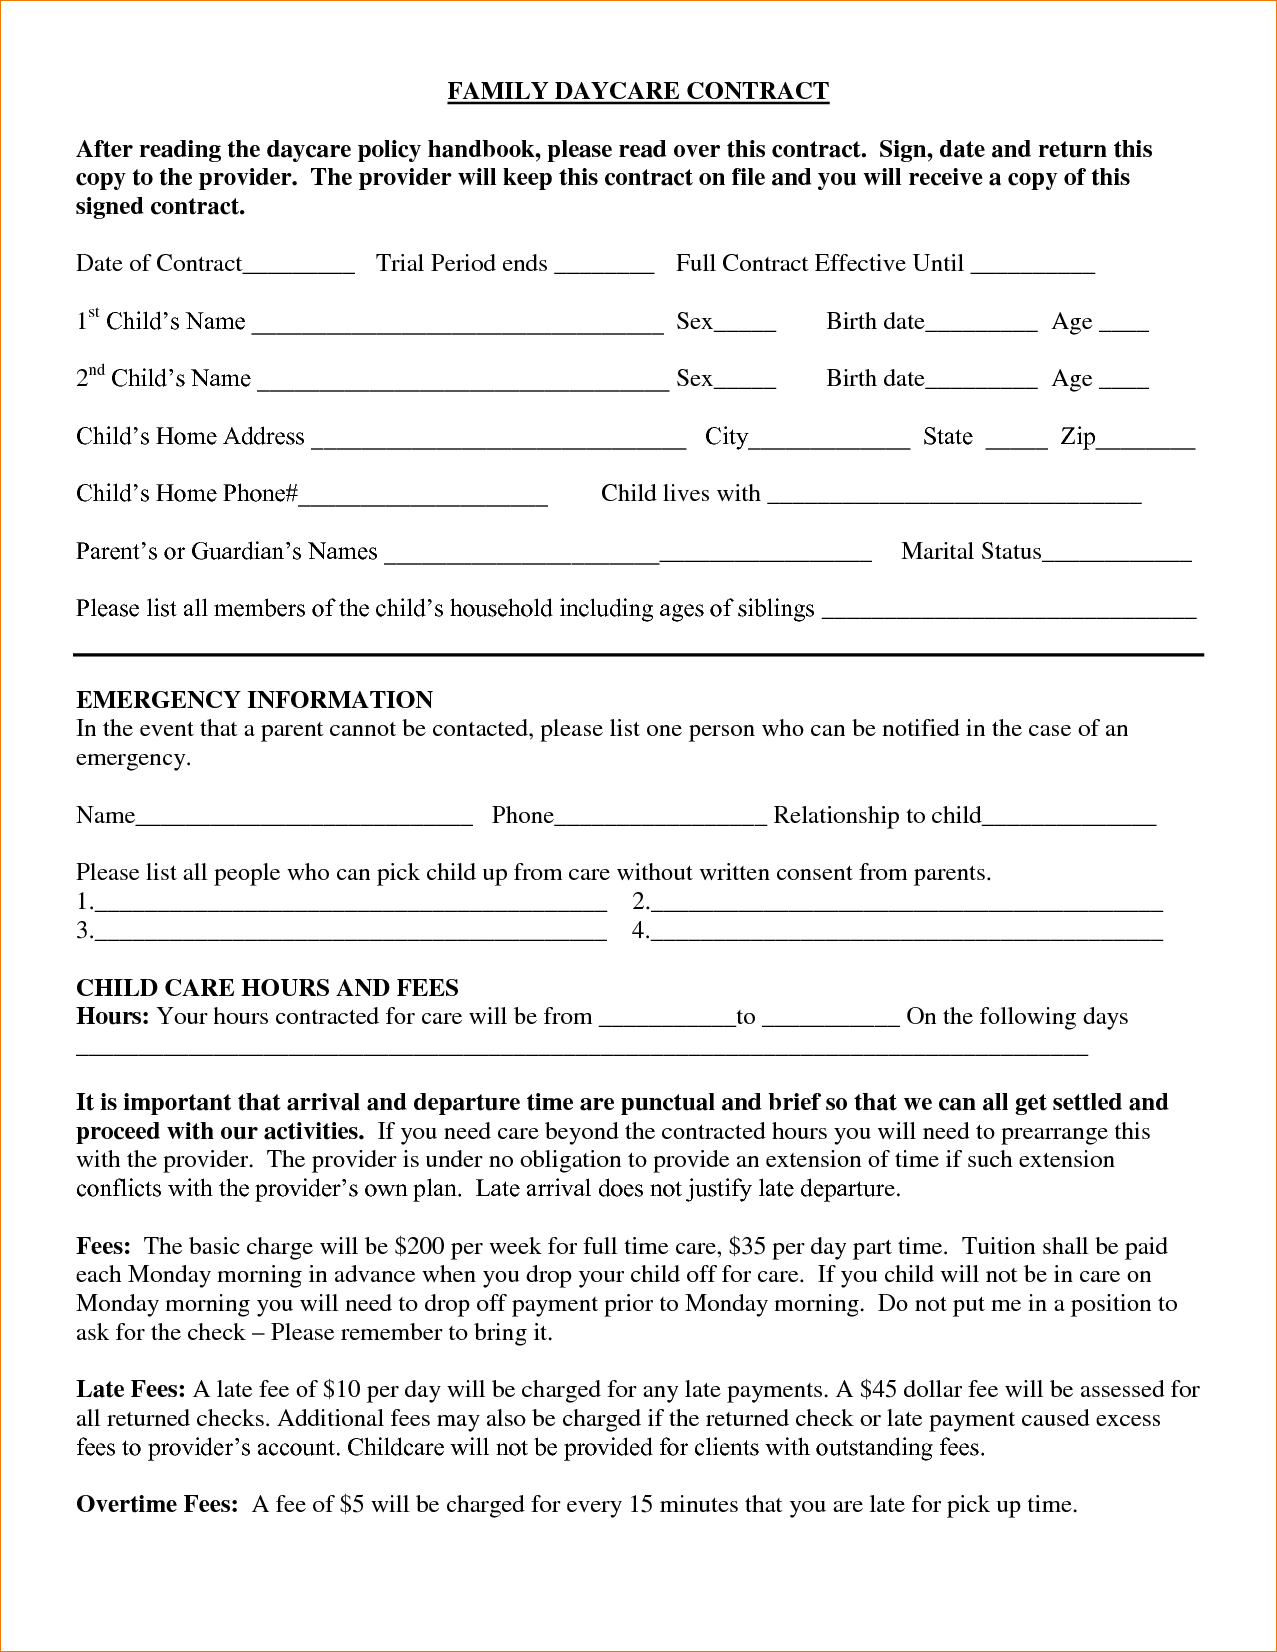 Daycare Contract Family Daycare Contract After Reading The Daycare - Free Printable Home Improvement Contracts